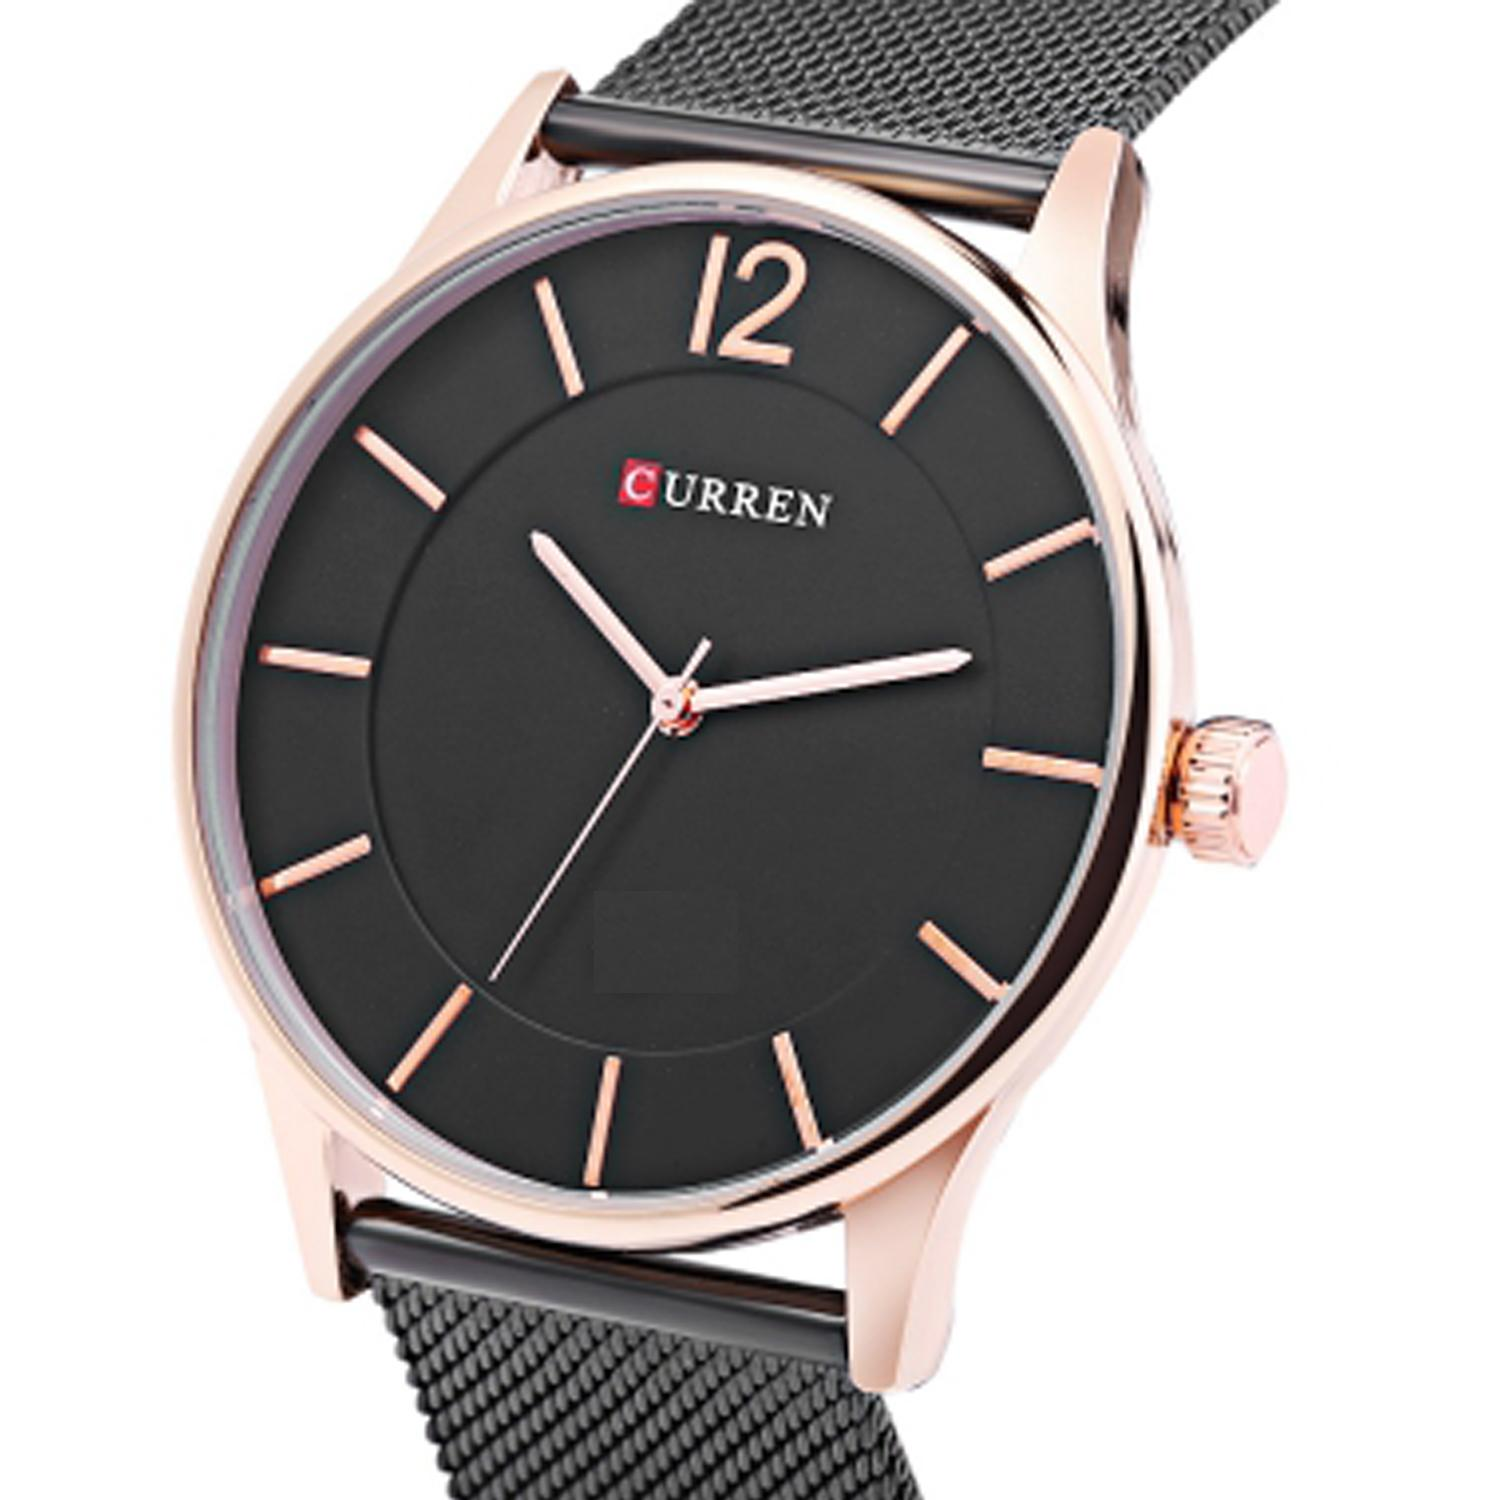 Stainless Steel Analog Watch for Men – Black